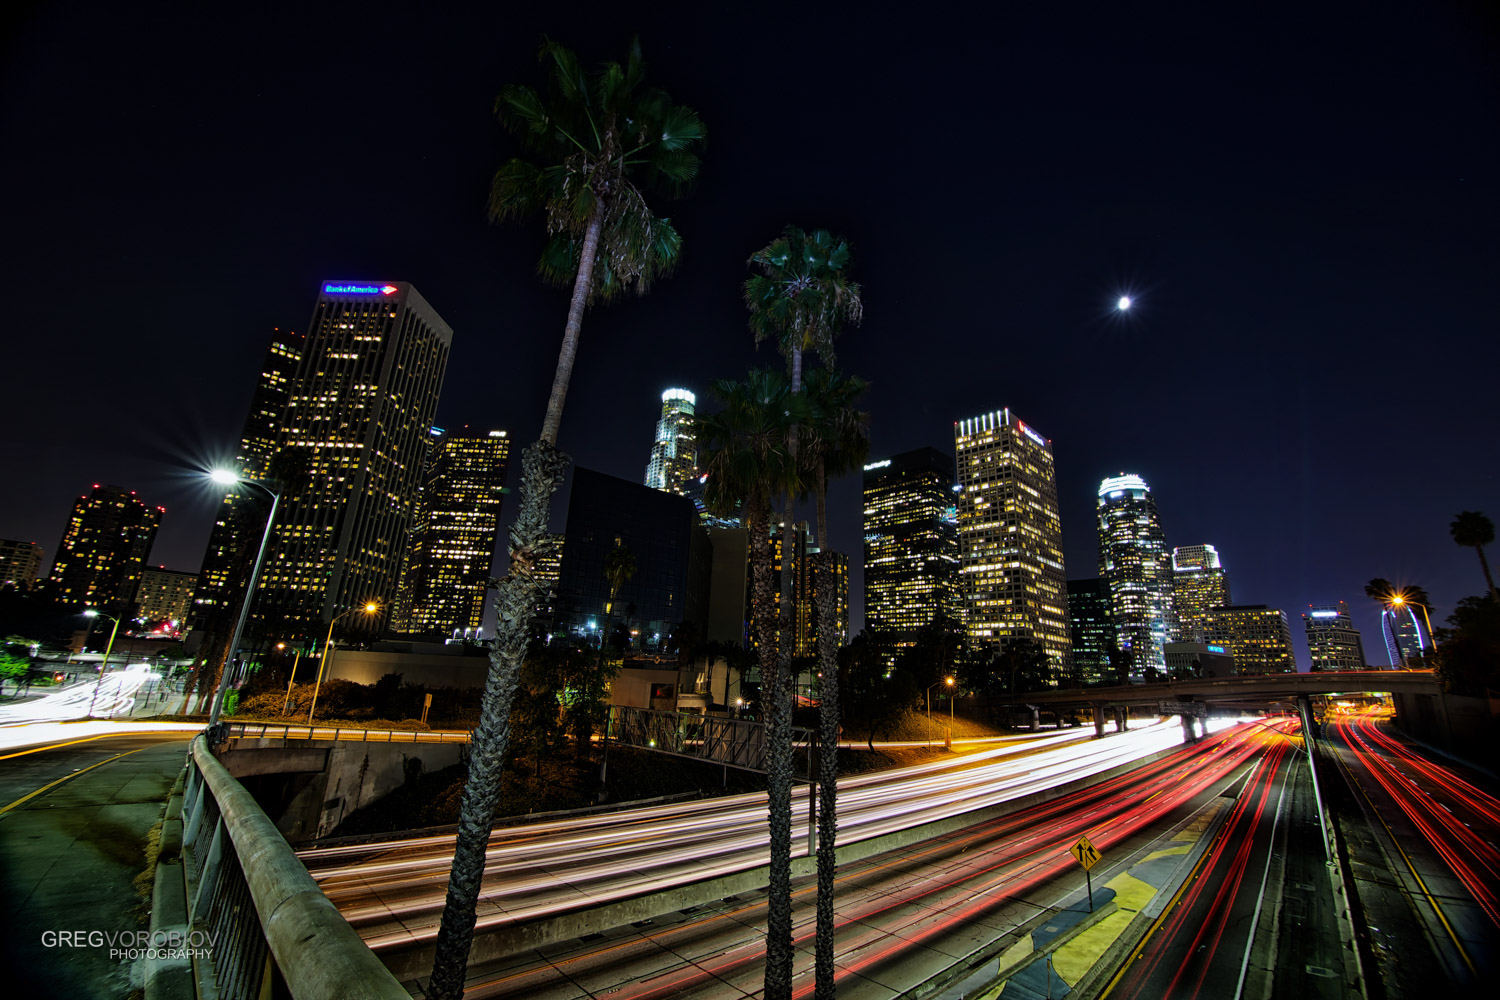 downtown_los_angeles_by_greg_vorobiov-2.jpg